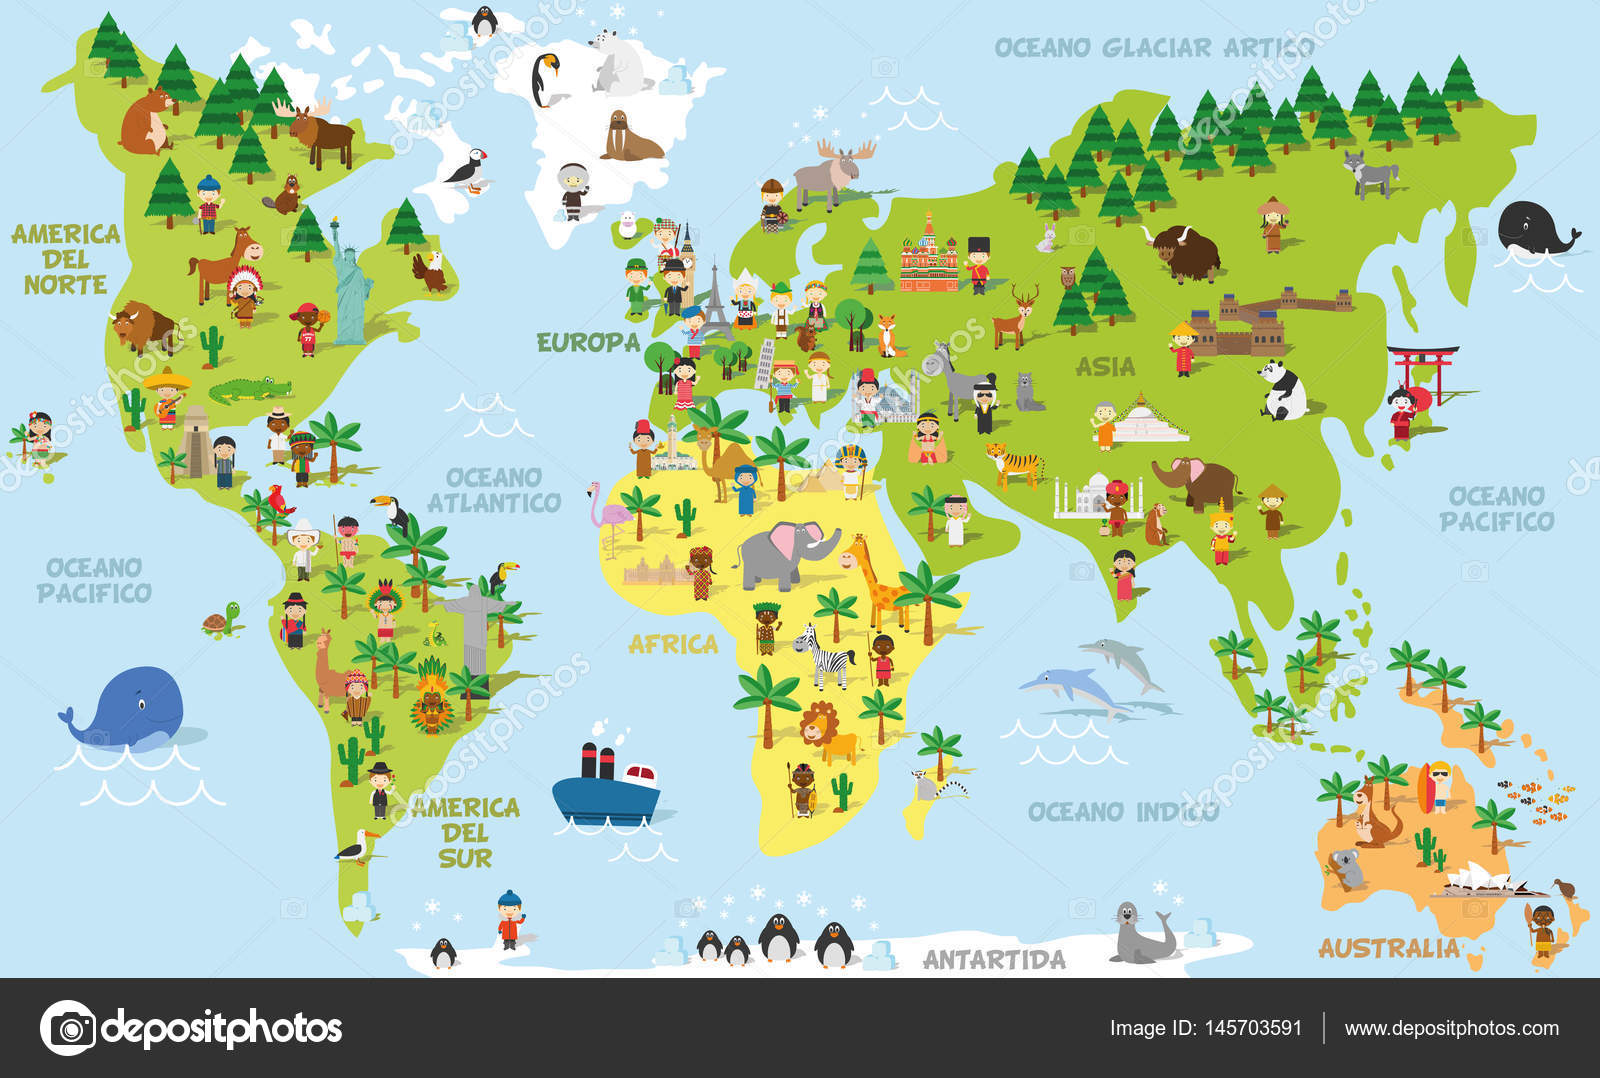 Funny cartoon world map with childrens of different nationalities funny cartoon world map with childrens of different nationalities animals and monuments of all the continents and oceans names in spanish gumiabroncs Choice Image